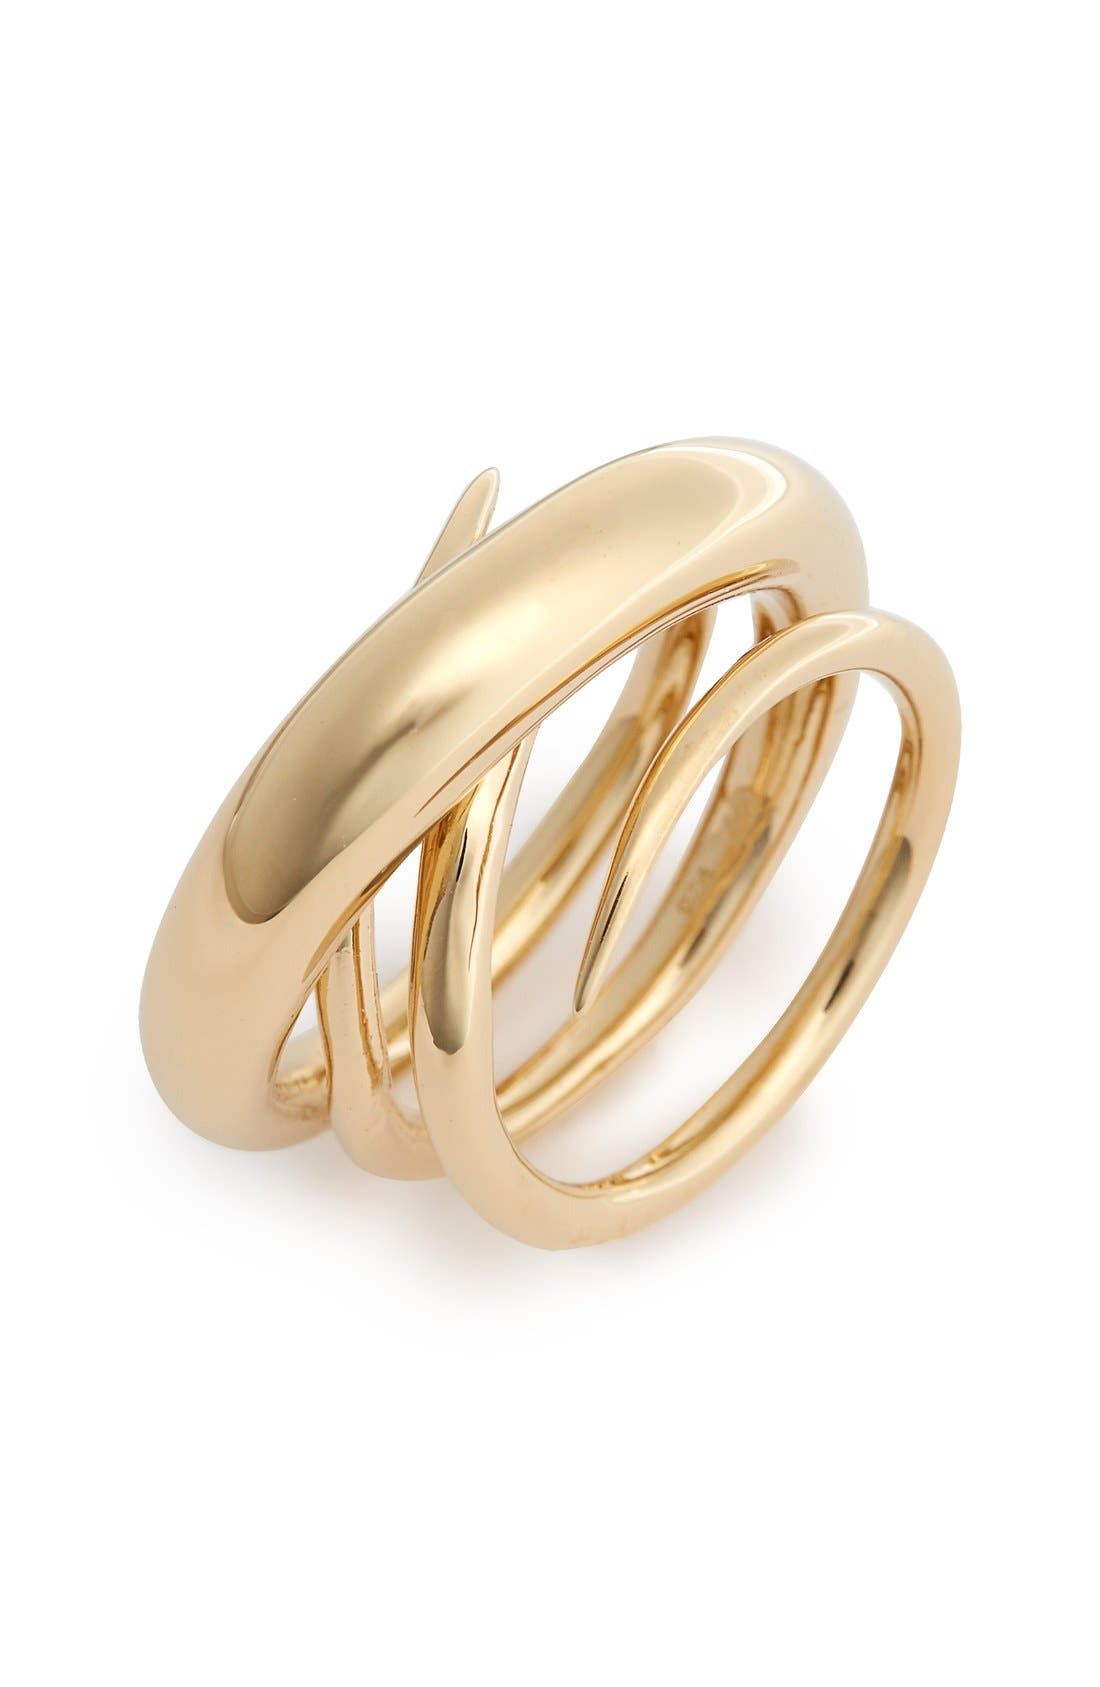 'Hurly Burly' Ring,                         Main,                         color, Vermeil